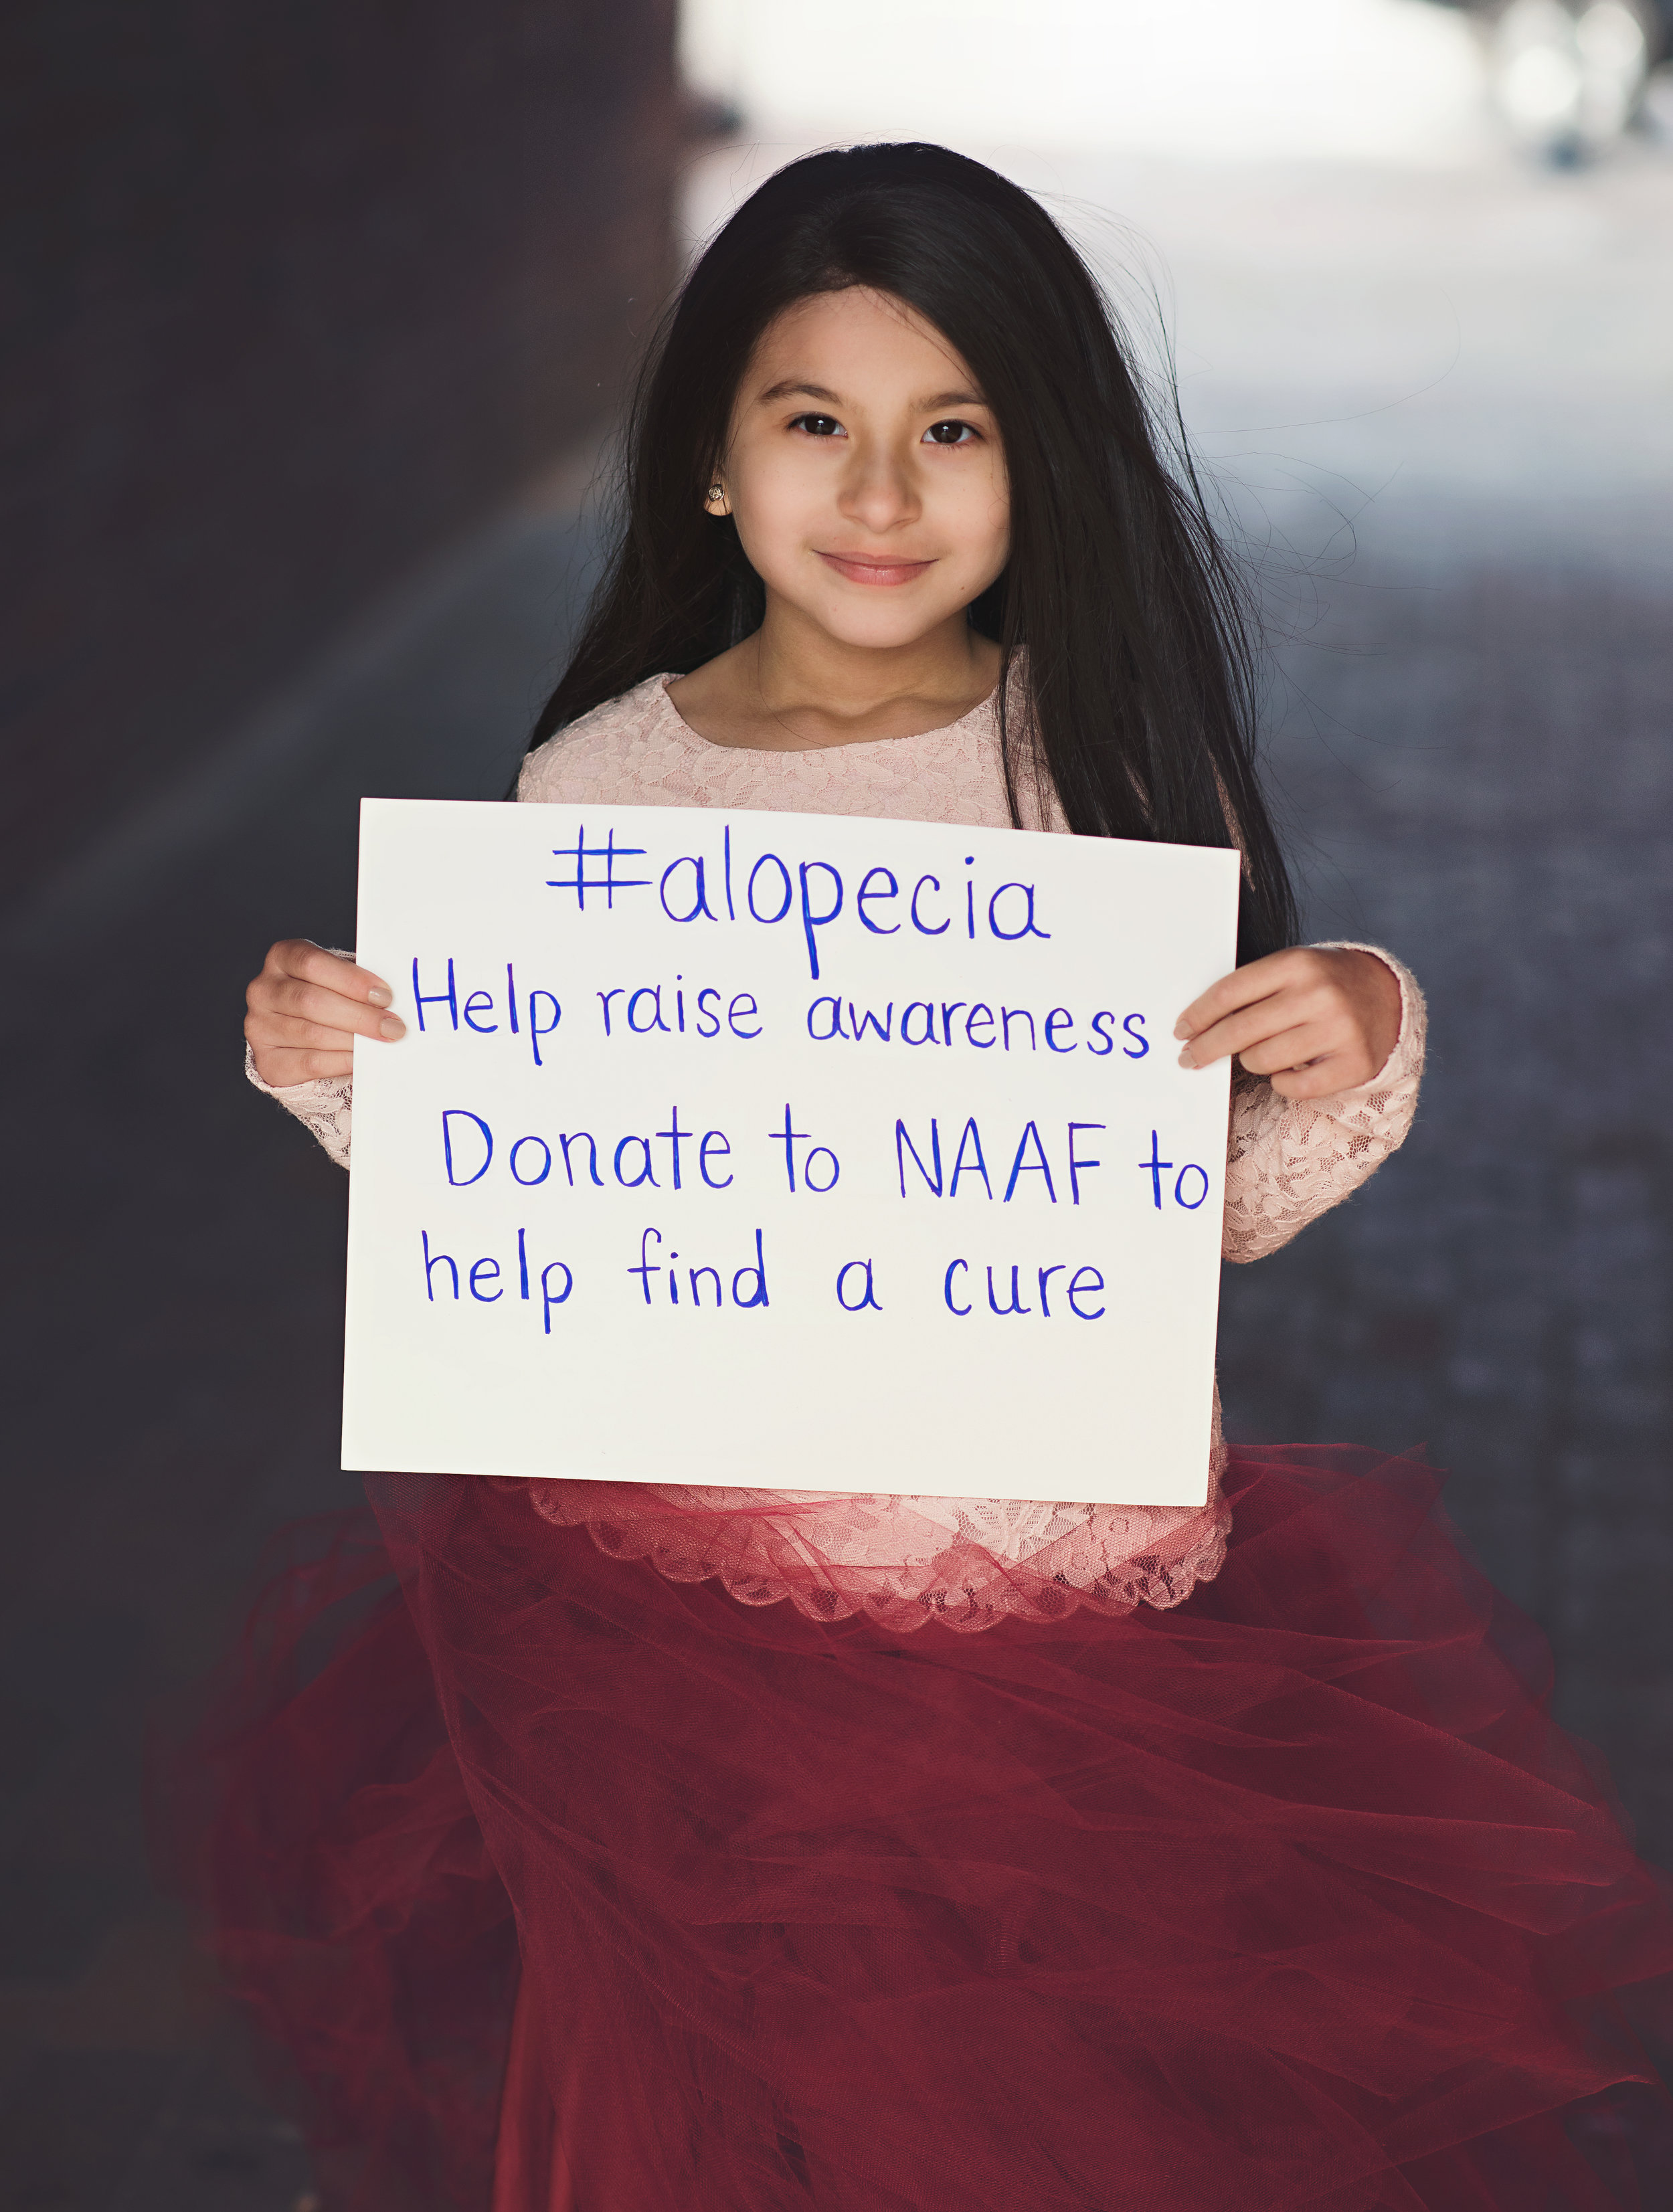 DONATE TO NAAF - https://www.naaf.org/get-involved/ways-to-donate